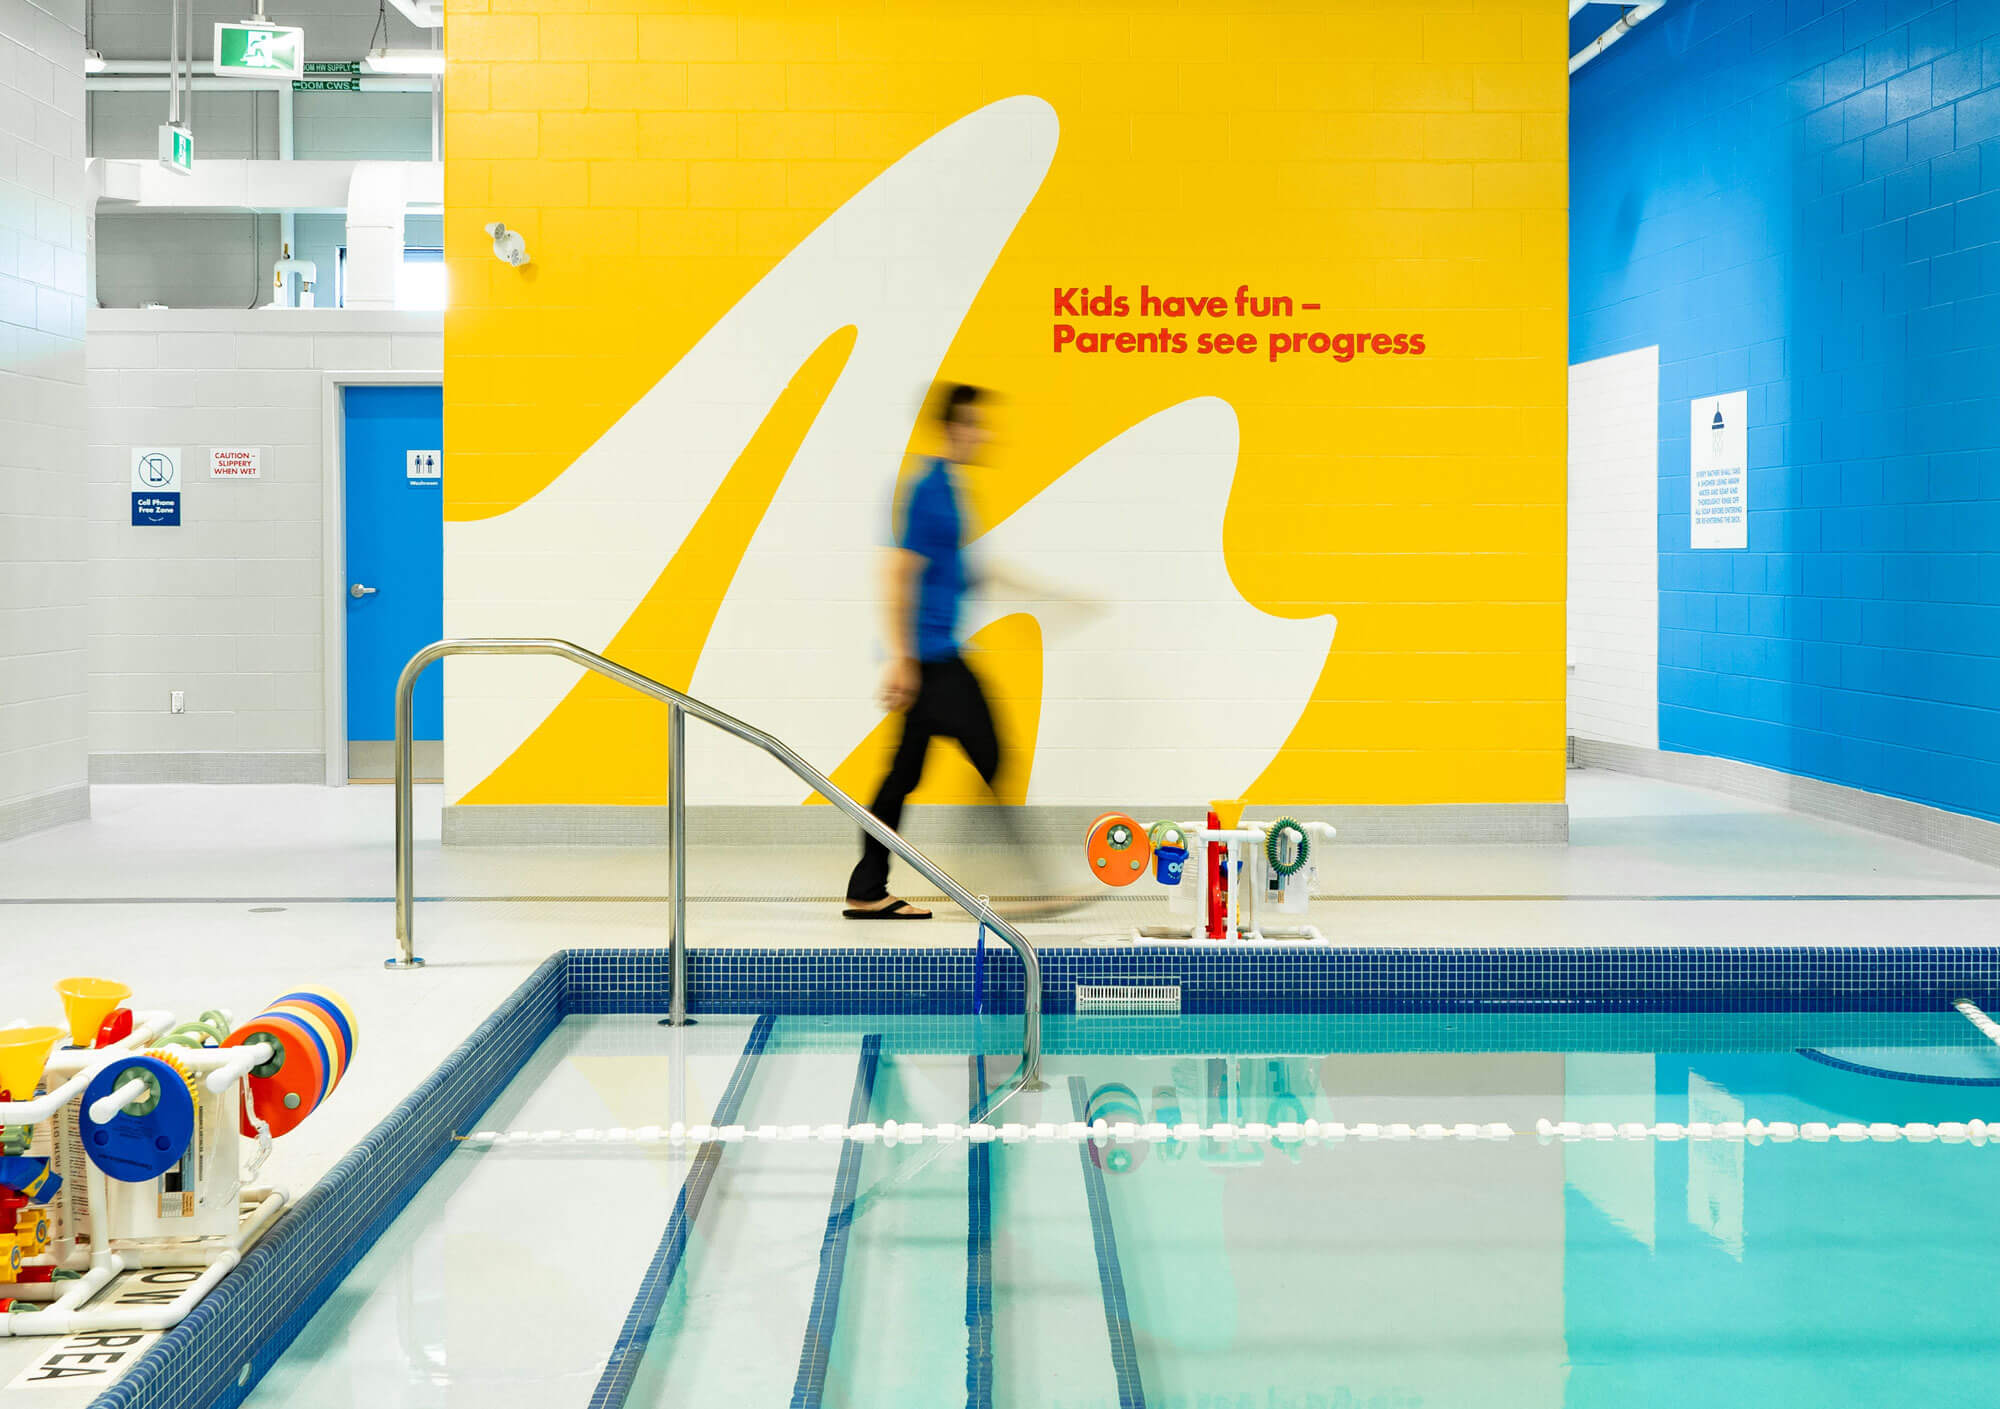 Making-Waves-Swim-School-branding-interior-pool-1-1